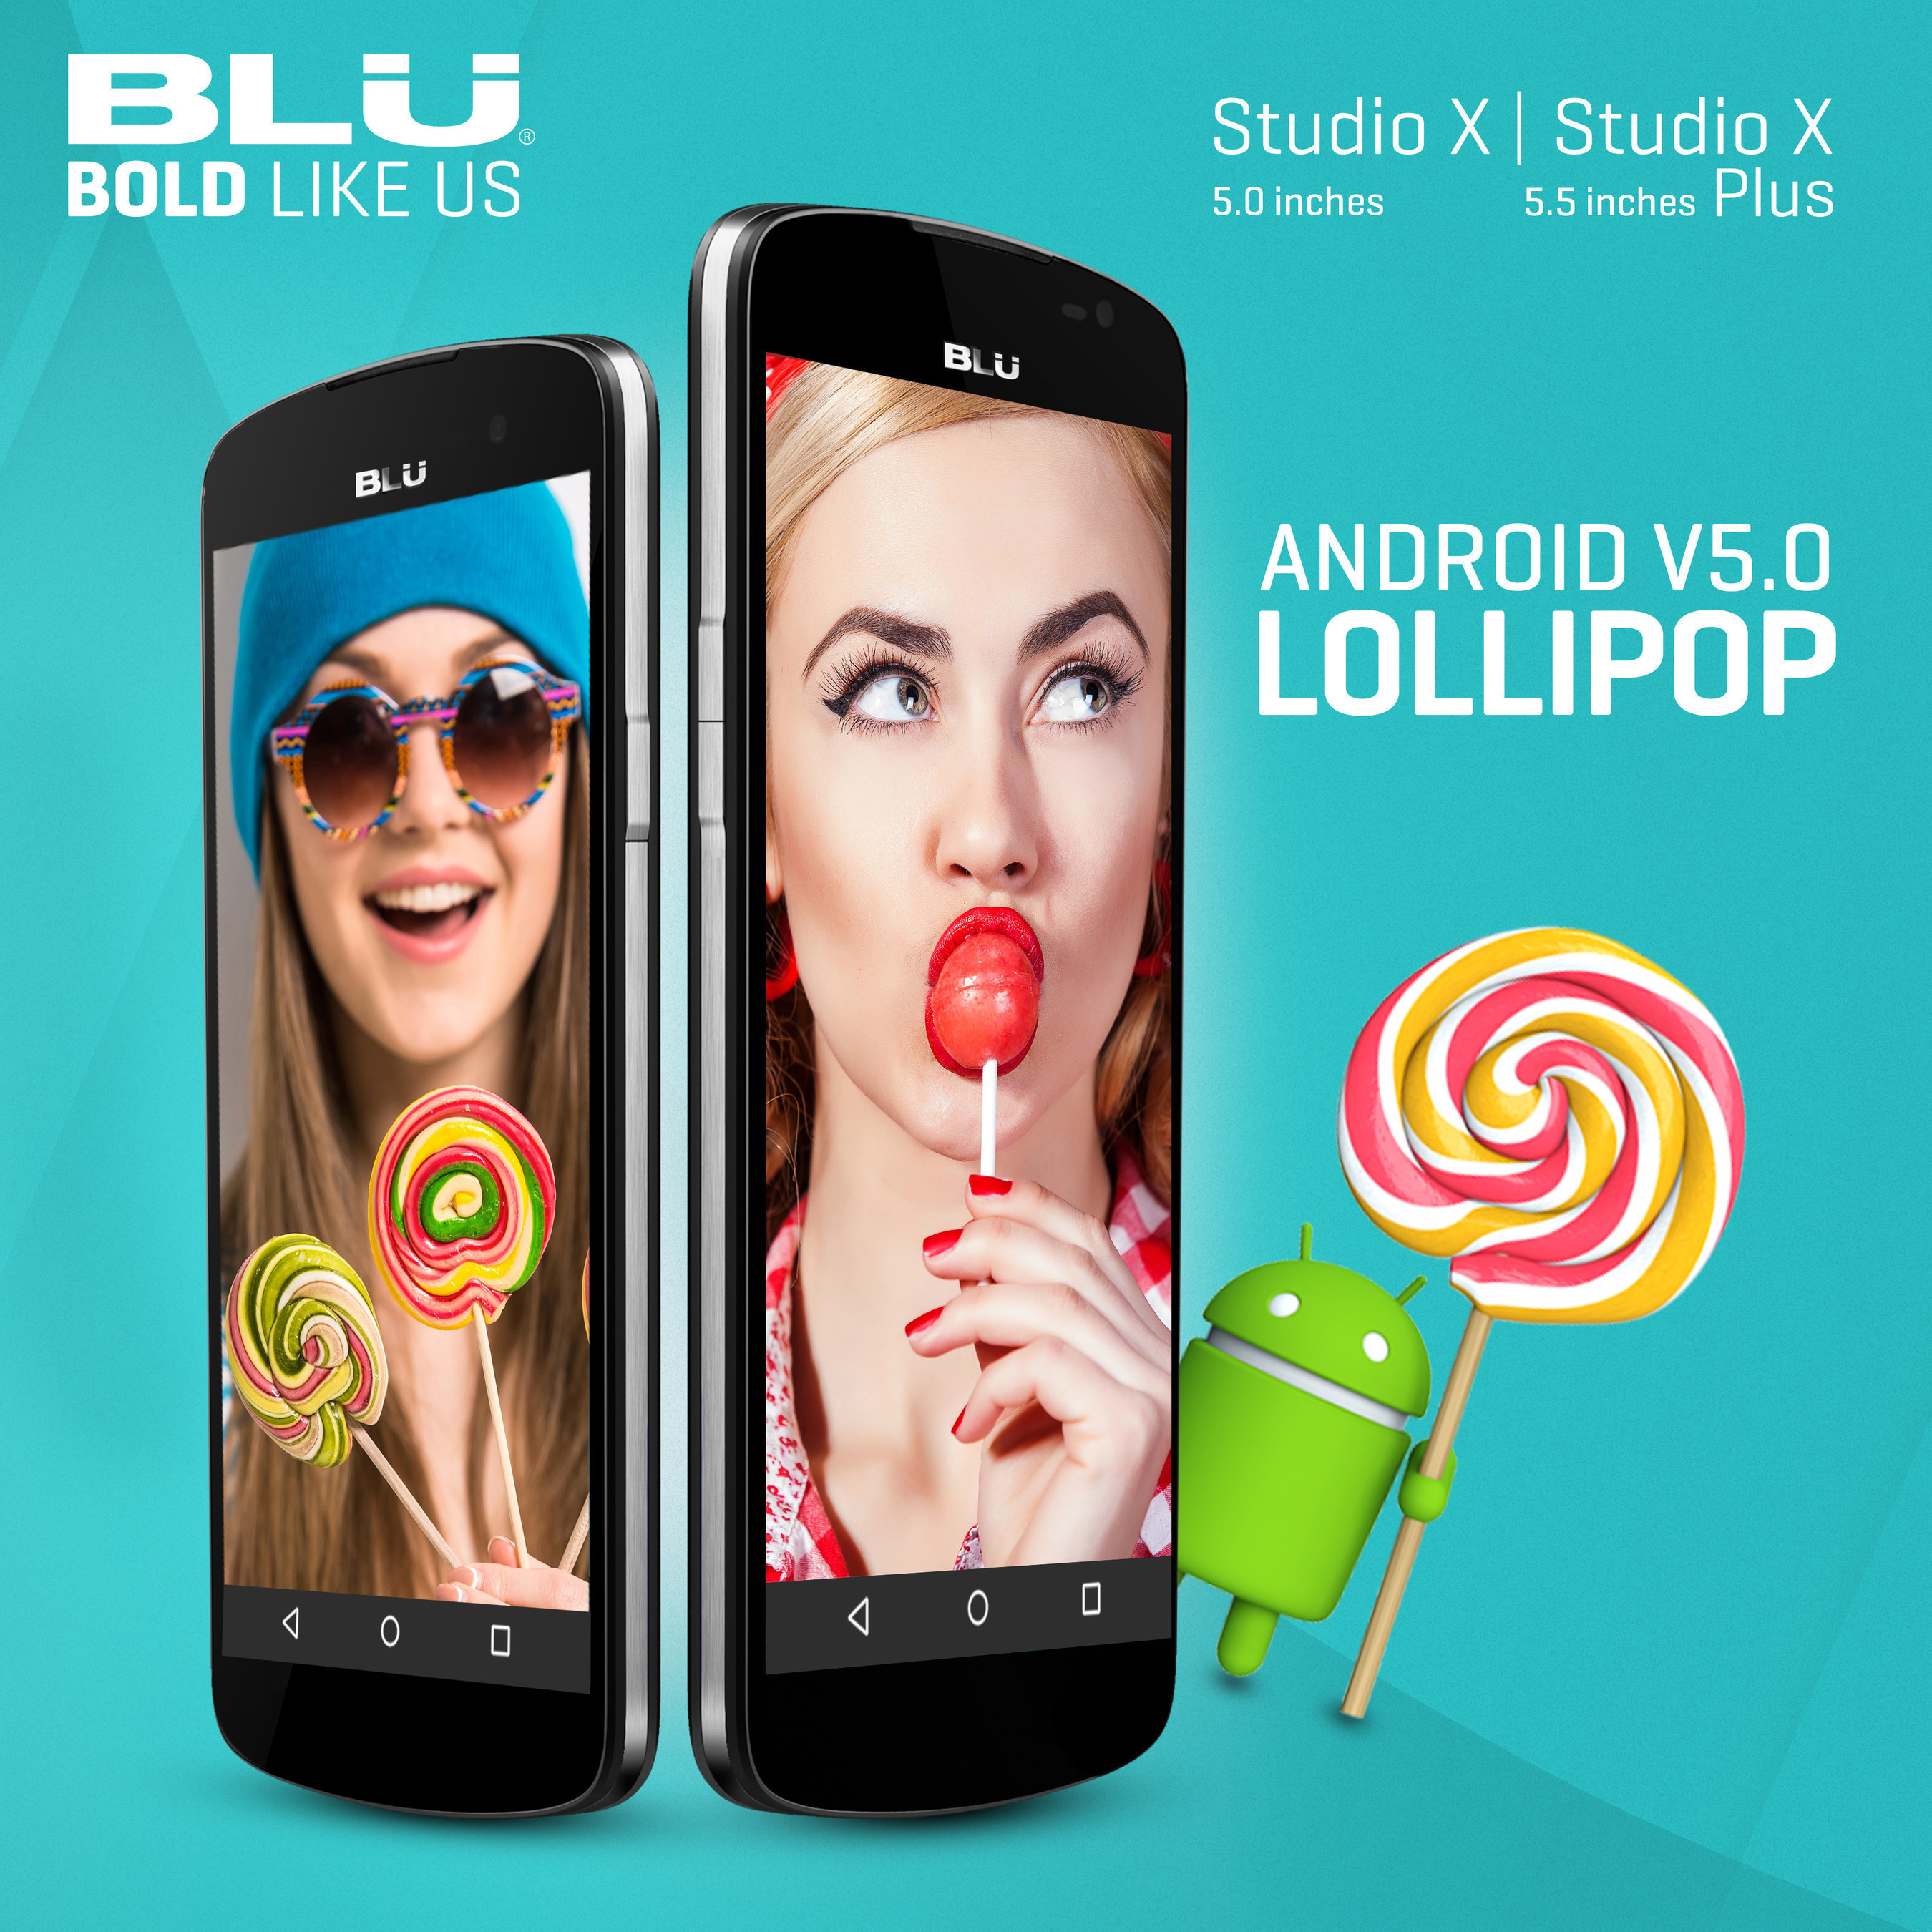 BLU Products announces Android Lollipop updates available for Studio X and X Plus. Additional devices coming soon.